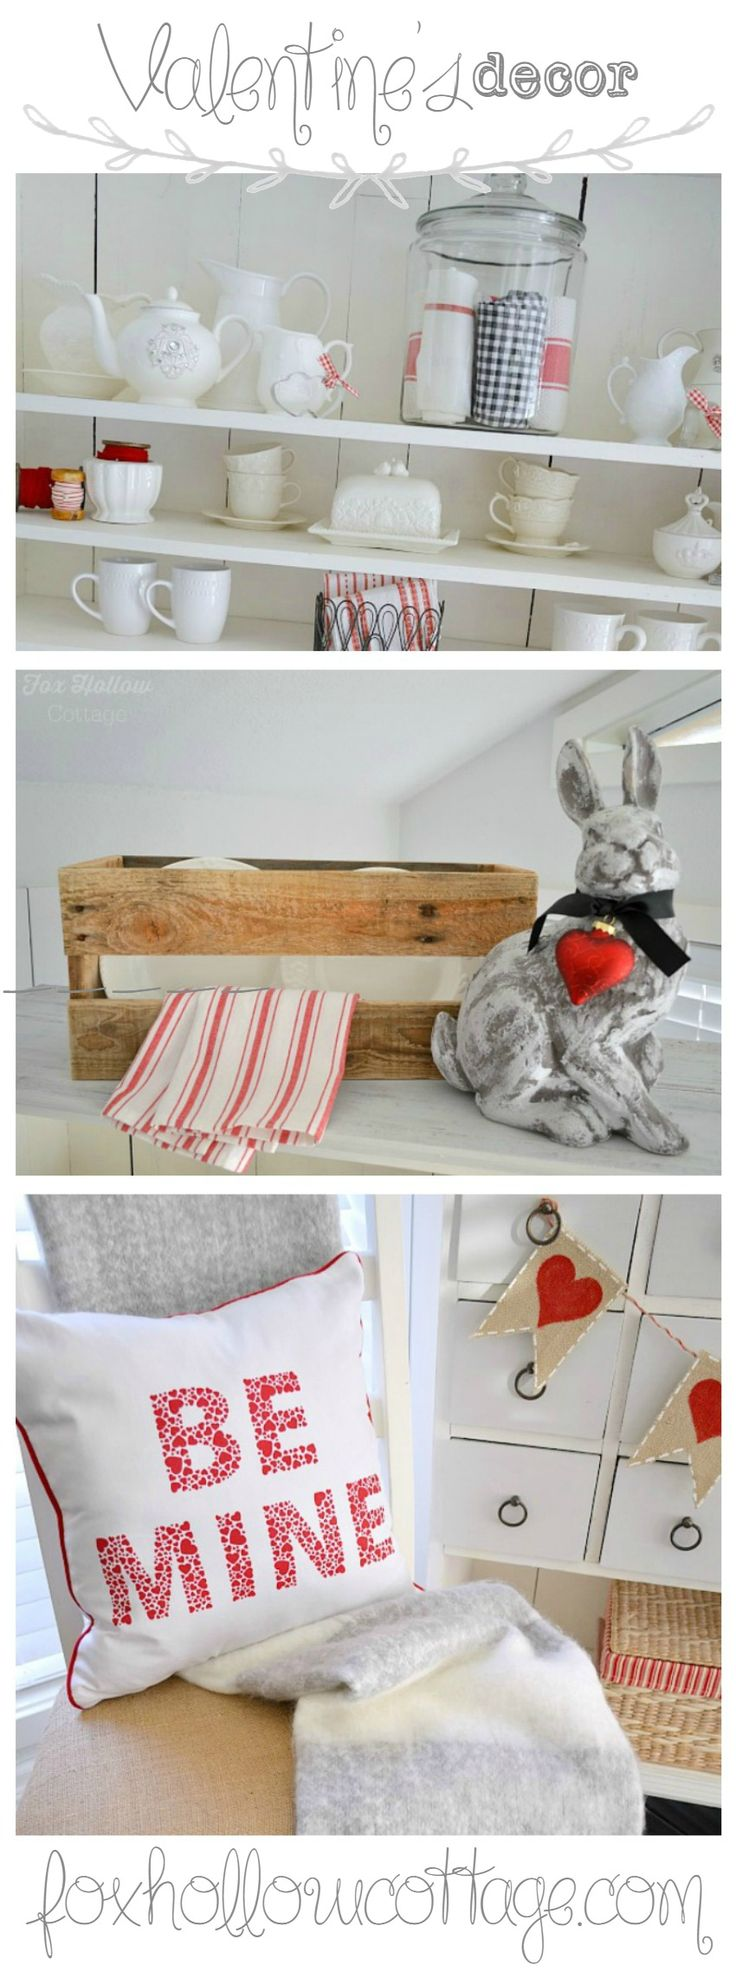 158 best HOLIDAY | VALENTINE images on Pinterest | Cabin porches ...